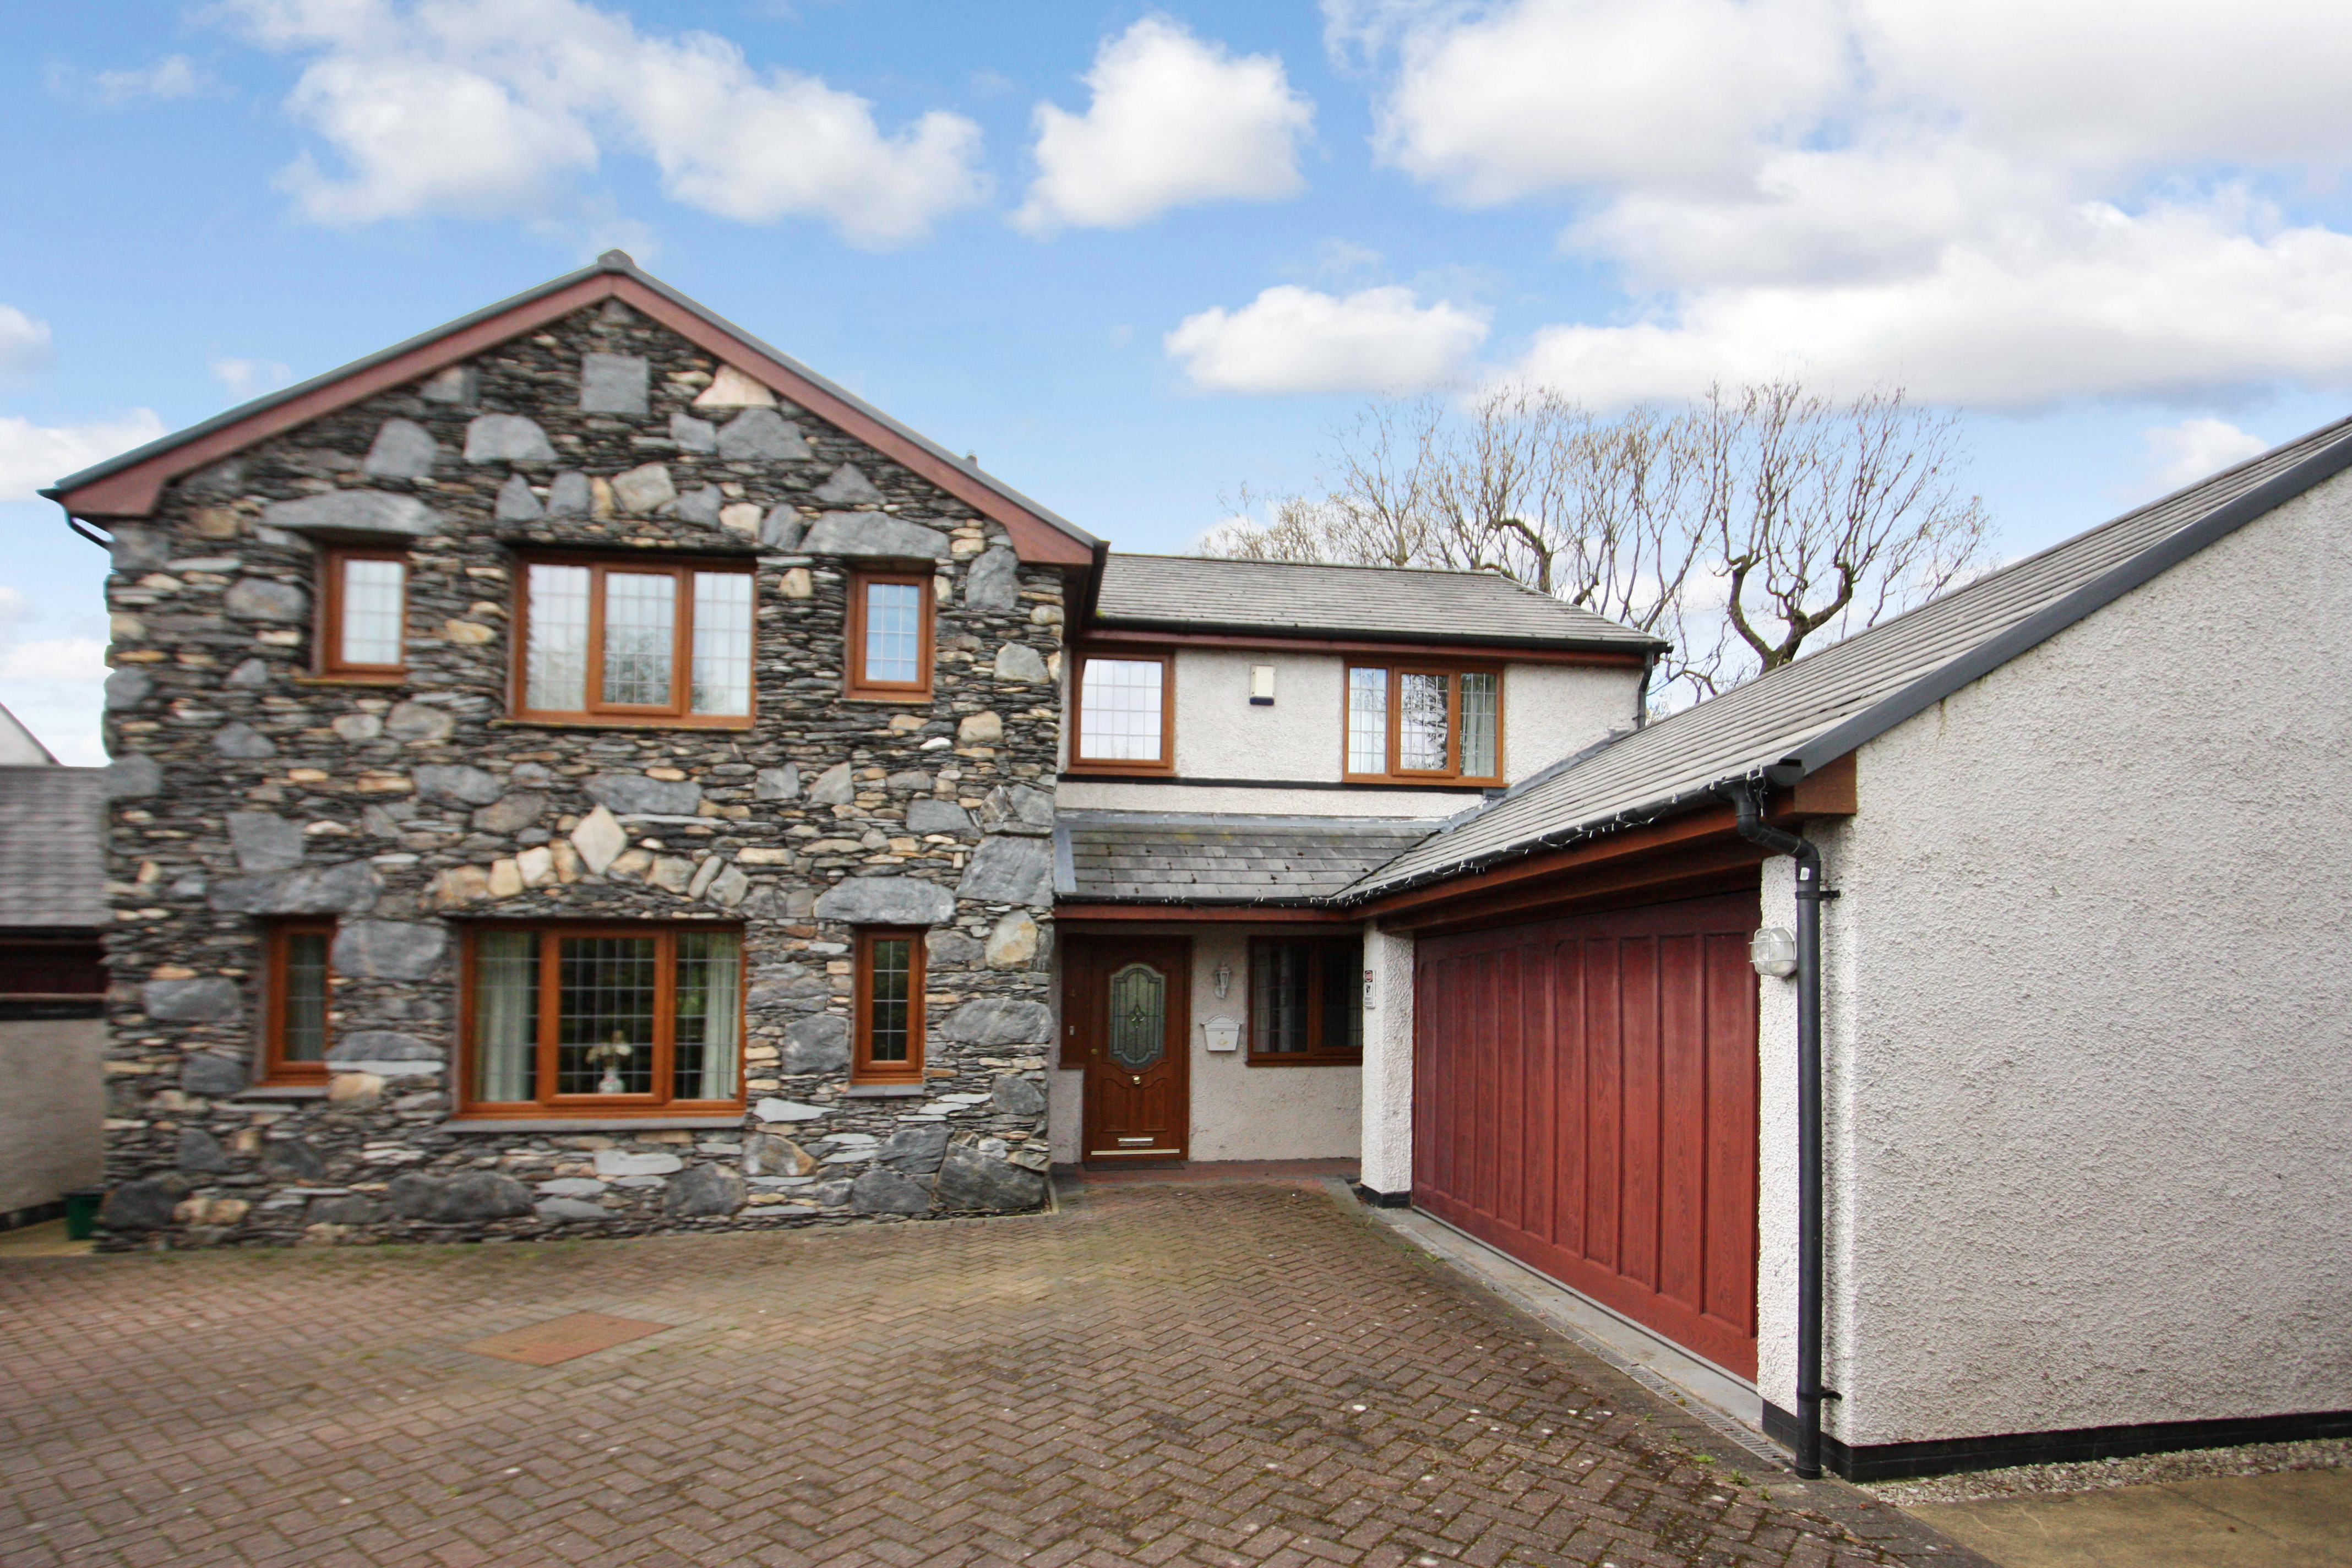 4 BEDROOM PROPERTY IN CUMBRIA CLOSE